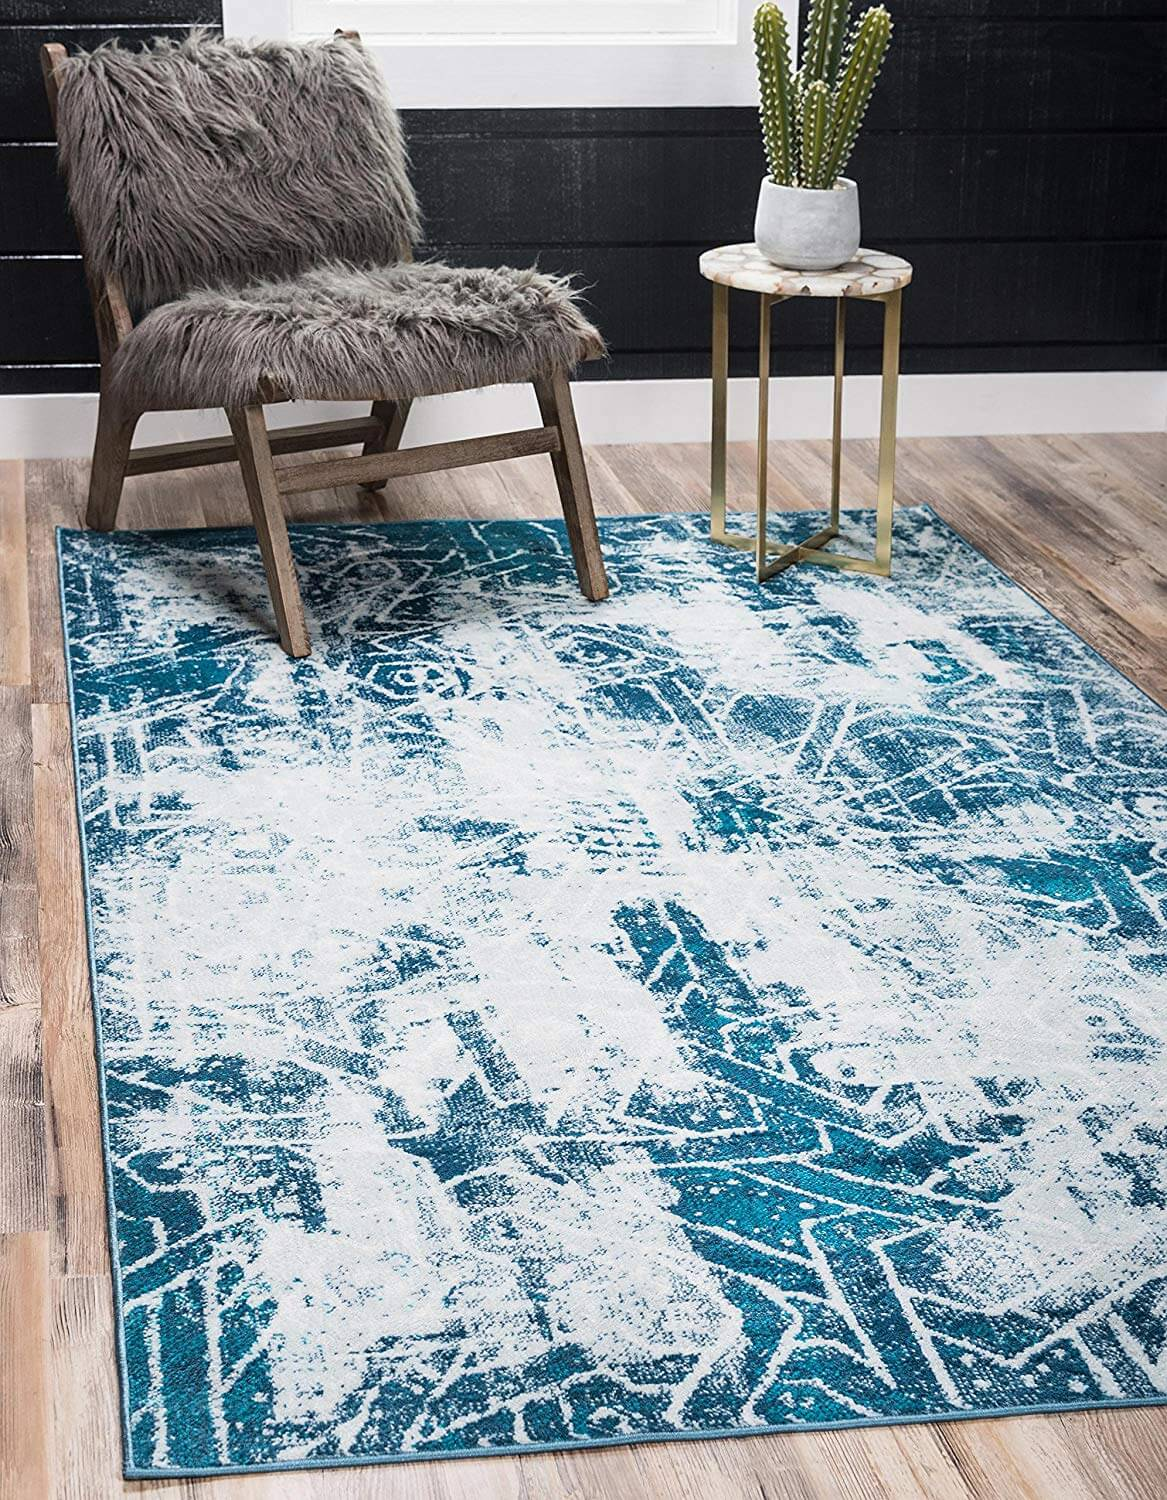 Blue Geometric Rug Amazon